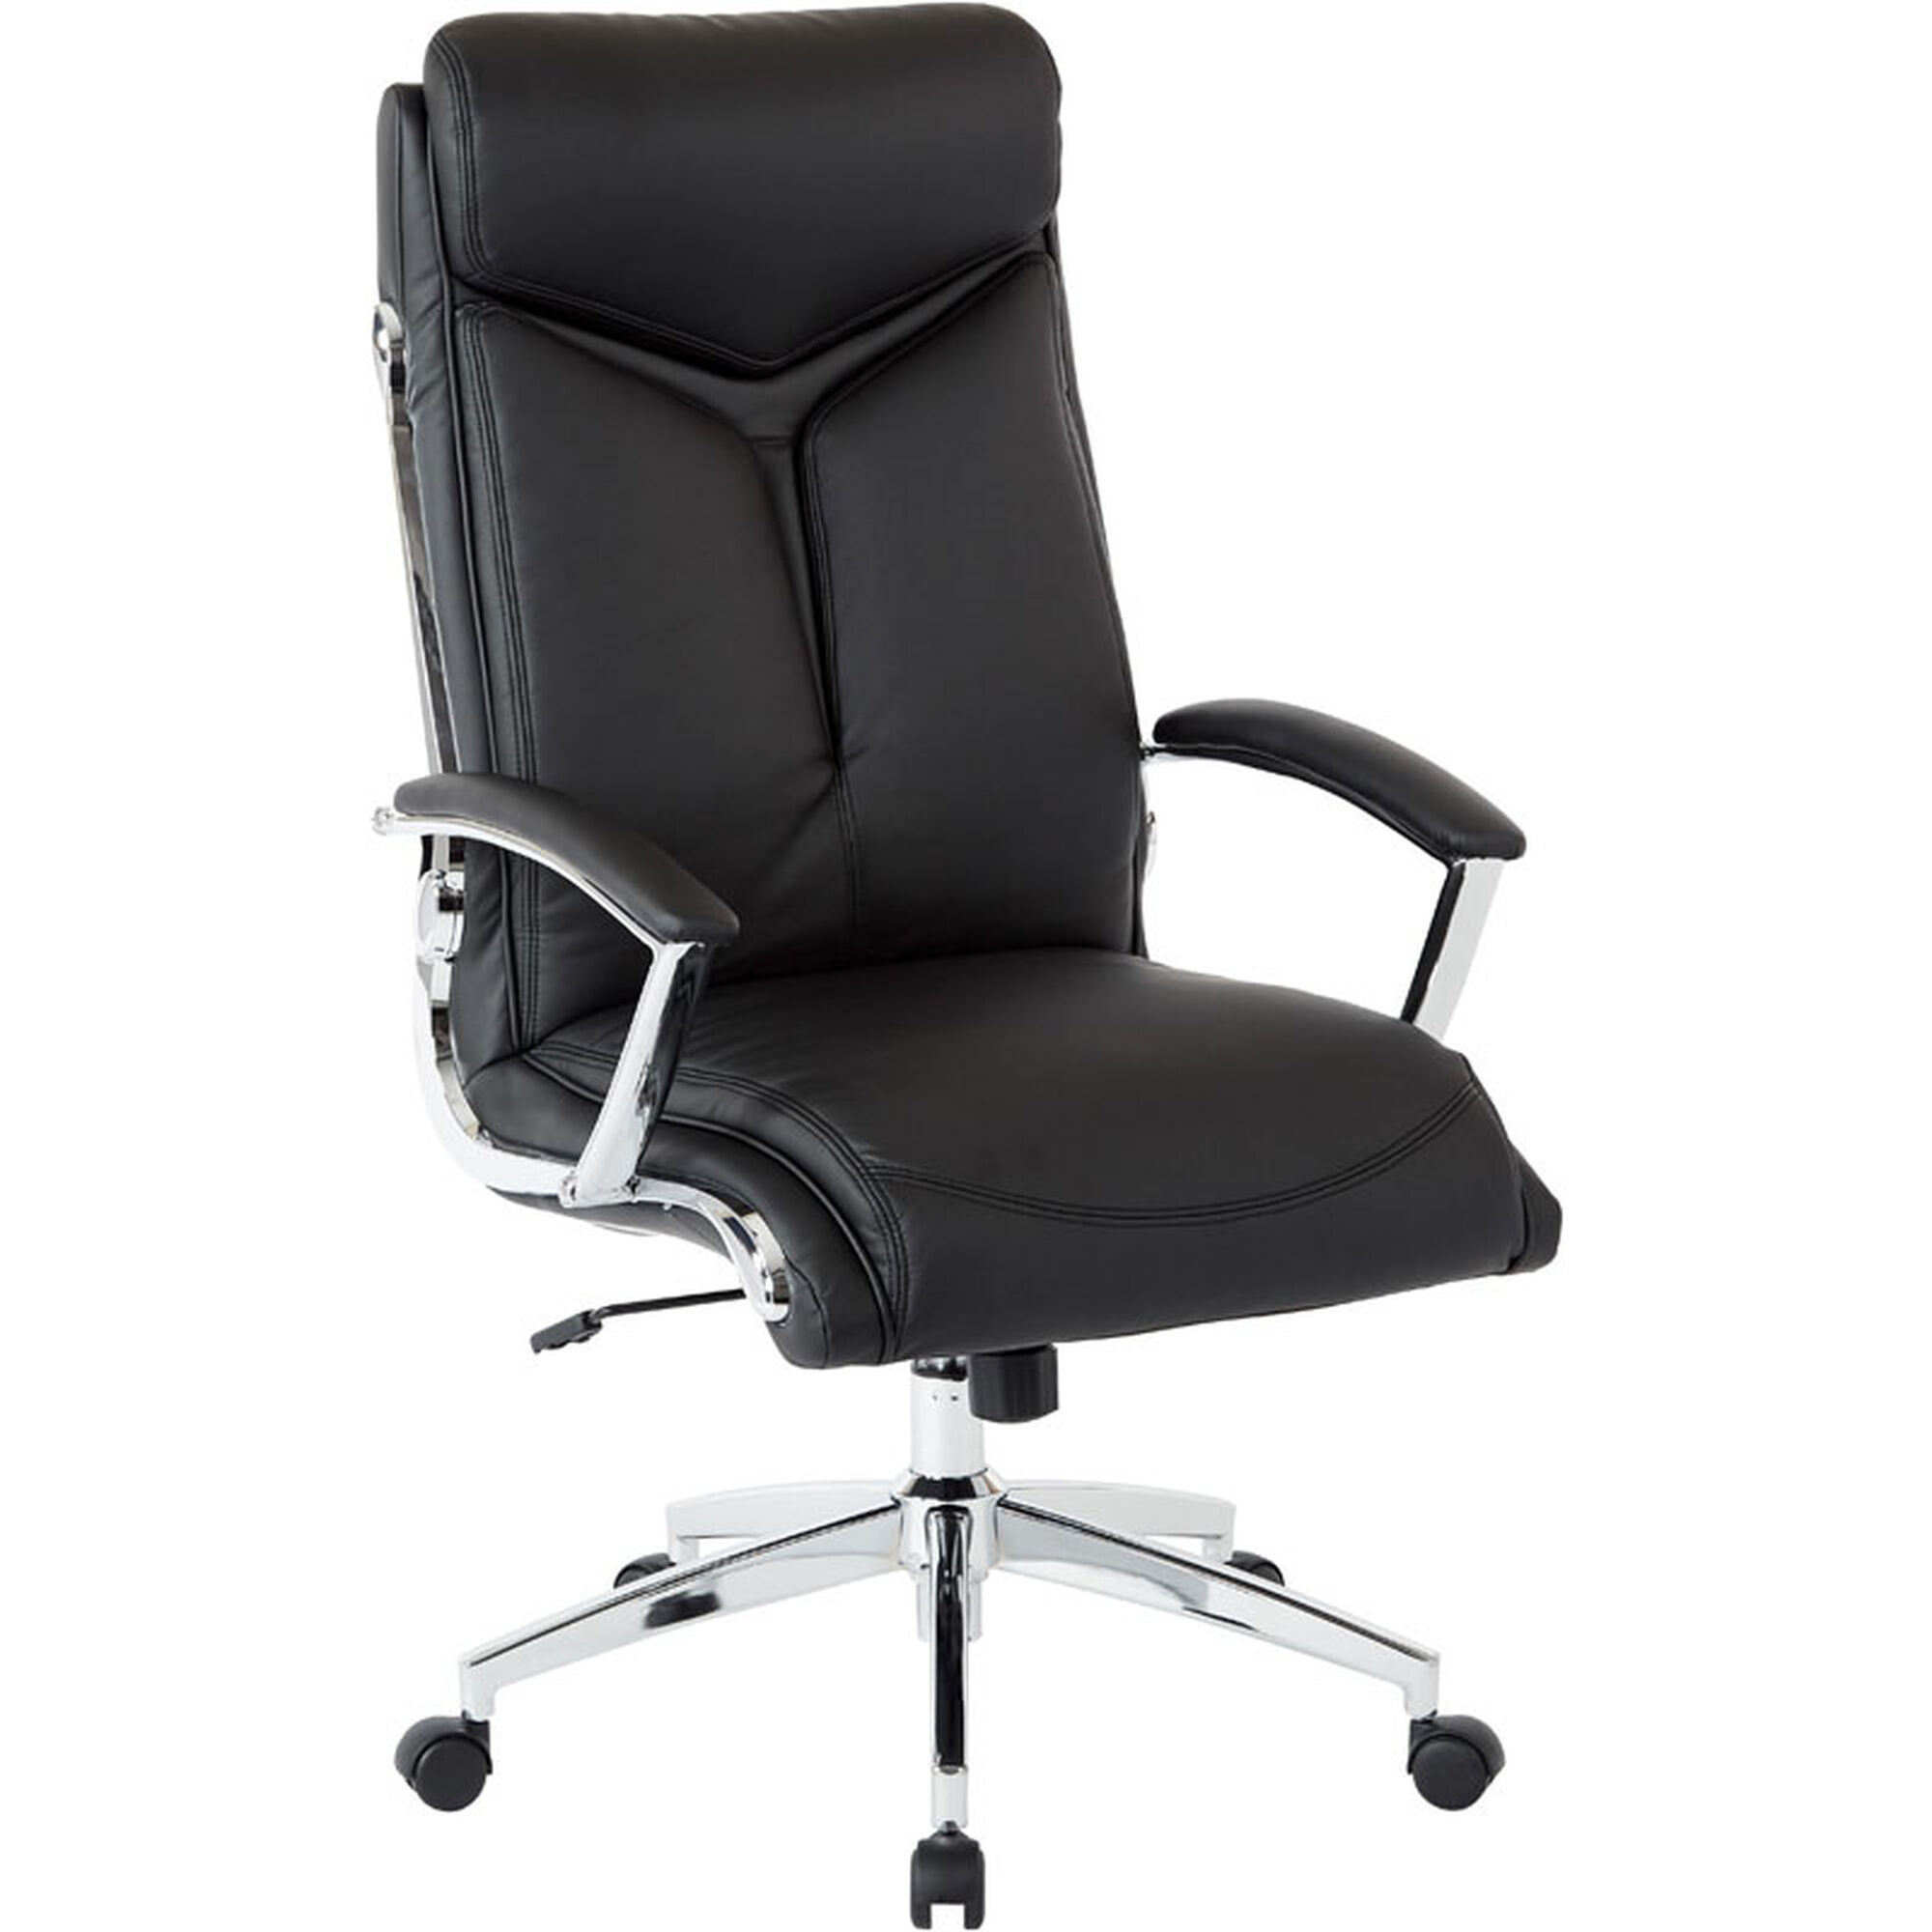 Our Work Smart Executive Faux Leather High Back Chair With